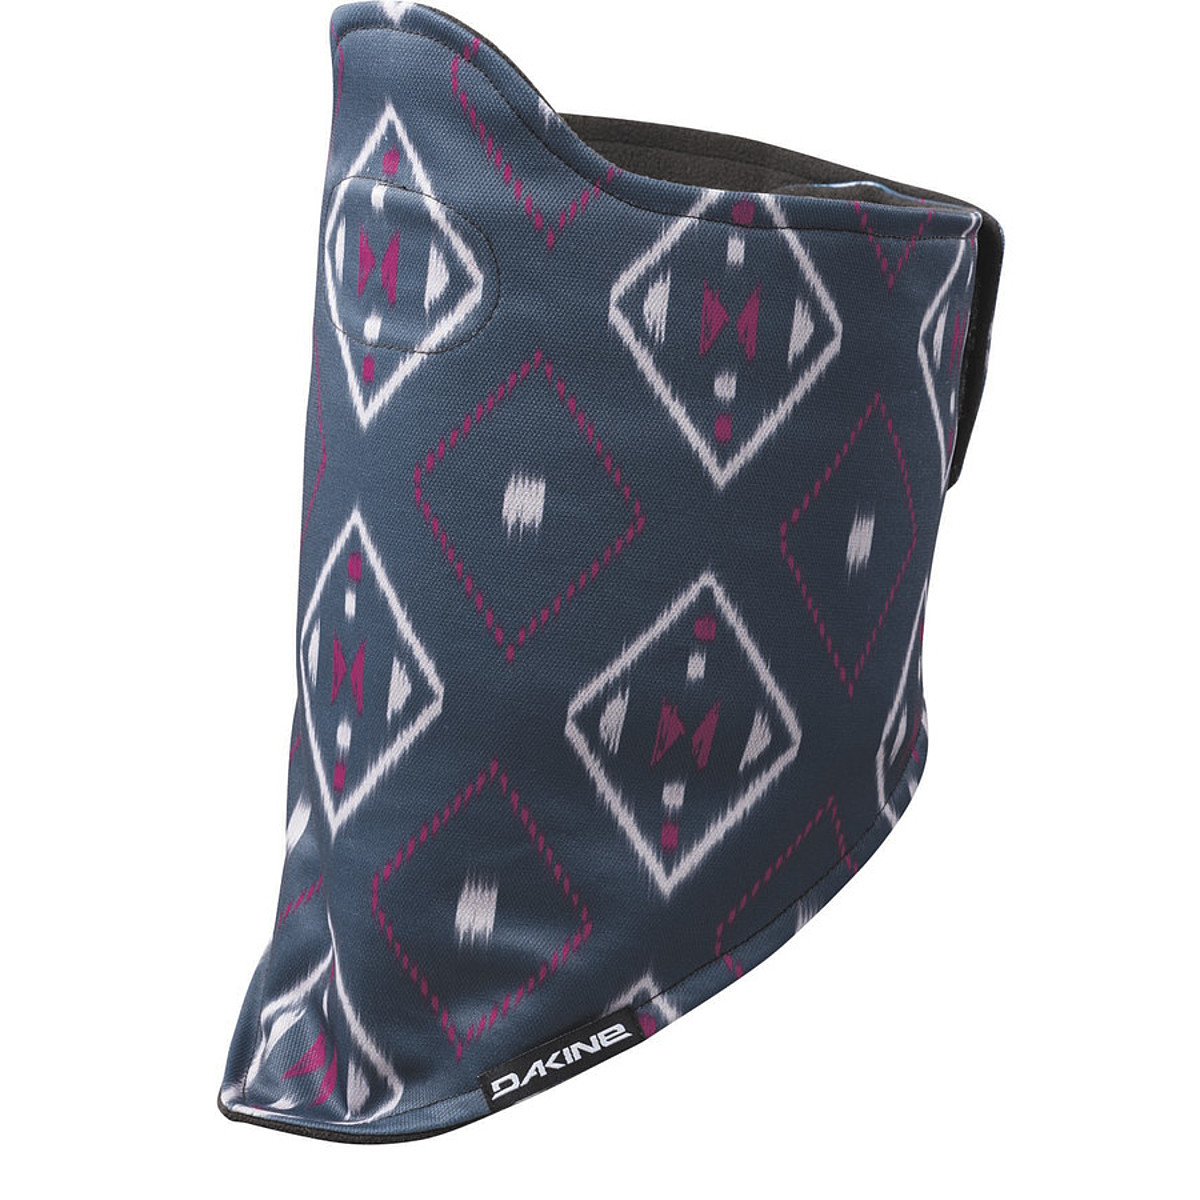 photo: DaKine Desperado Neck Gaiter accessory